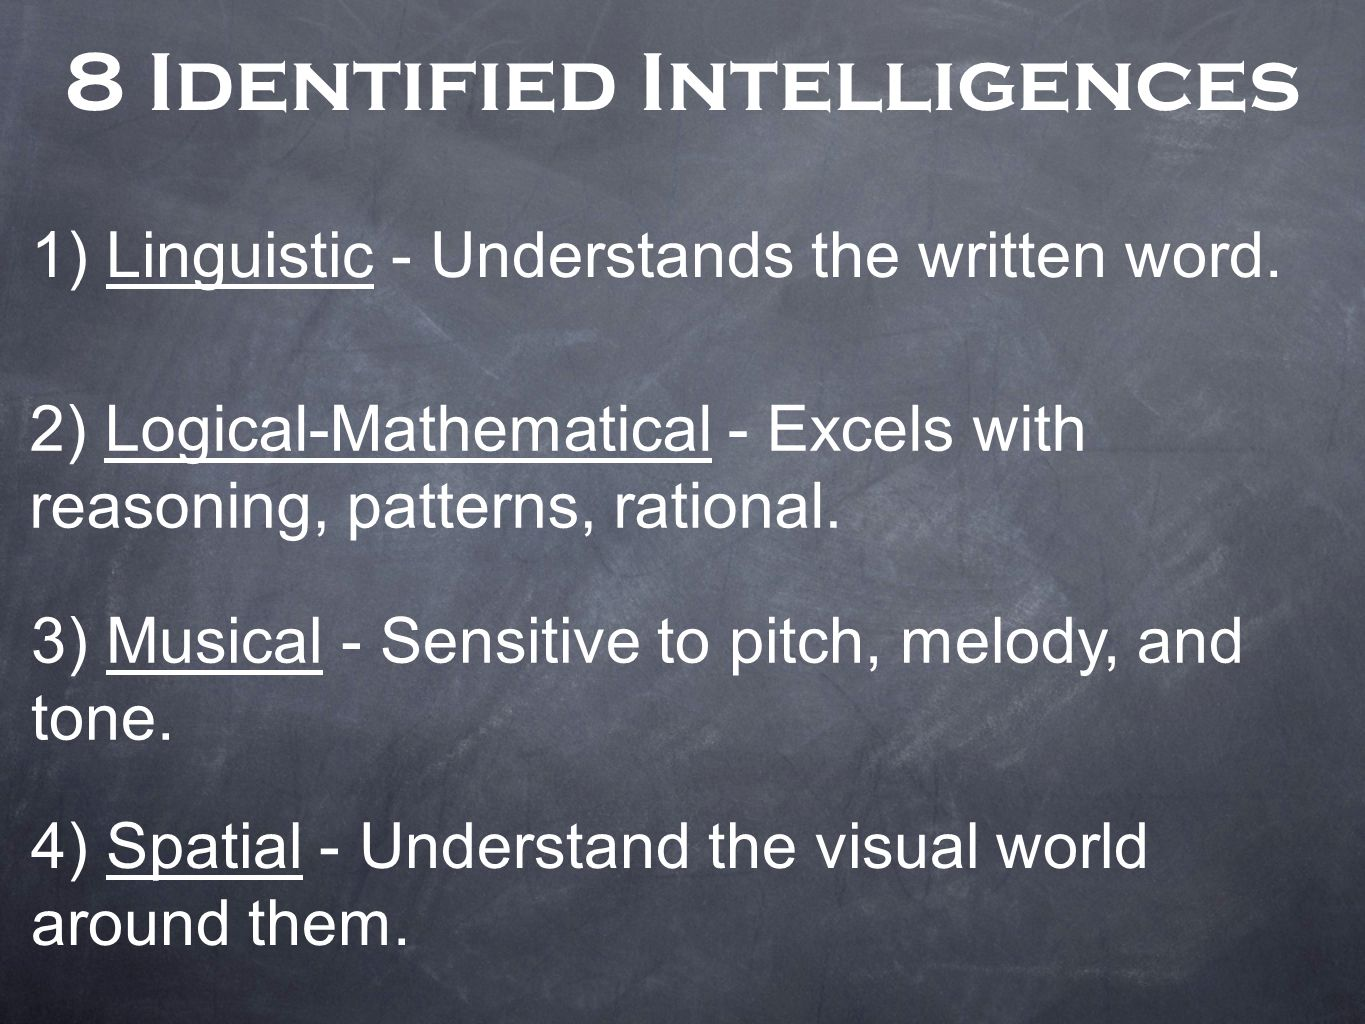 8 Identified Intelligences 1) Linguistic - Understands the written word. 2) Logical-Mathematical - Excels with reasoning, patterns, rational. 3) Music